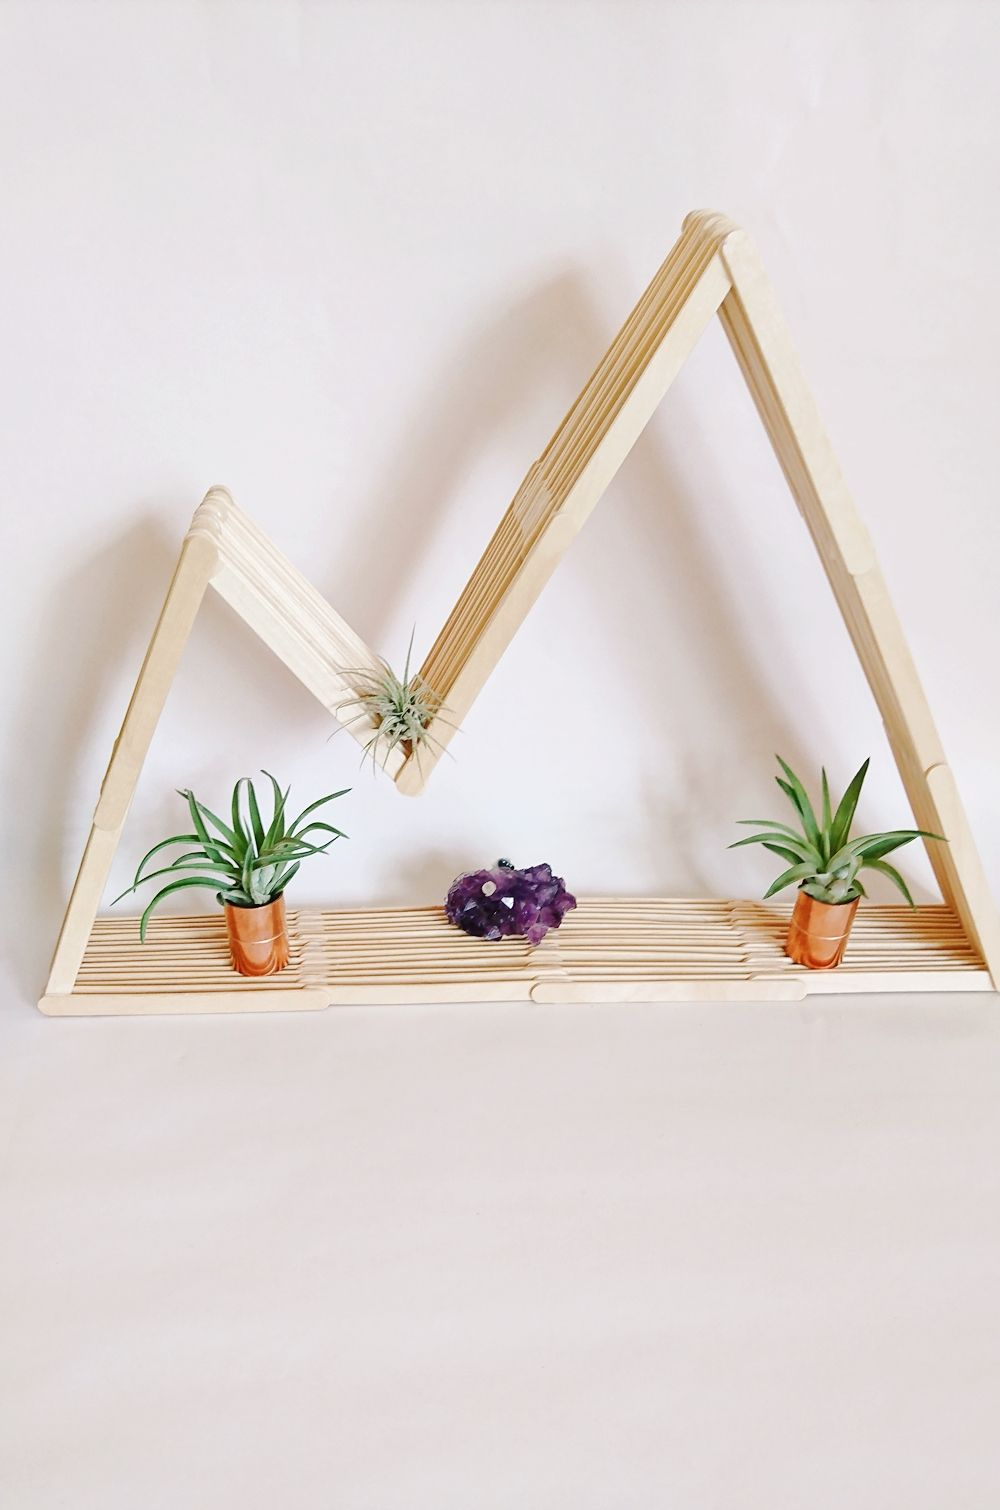 DIY Berg Regal aus Eisstäbchen | Julia to the Fullest -   22 diy Shelves popsicle sticks ideas